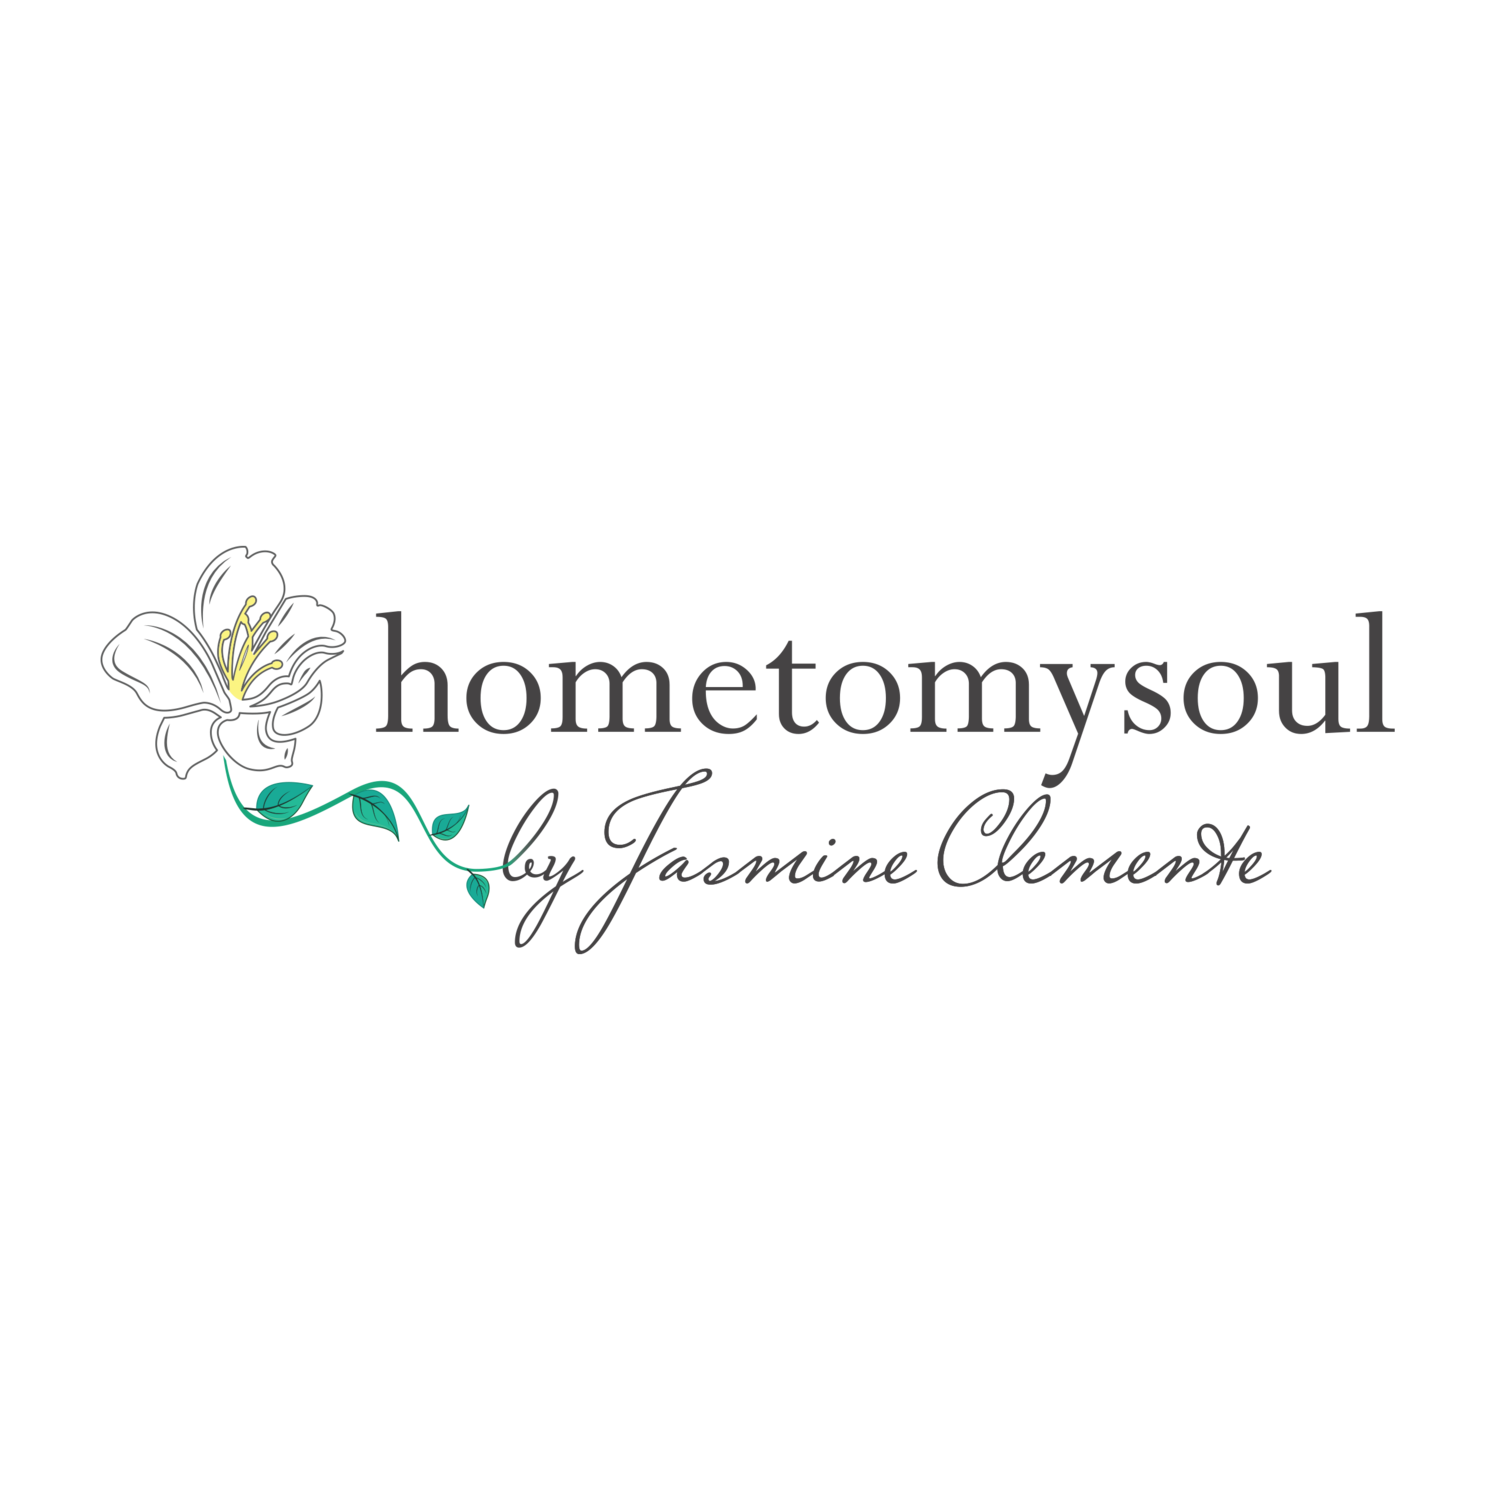 hometomysoul